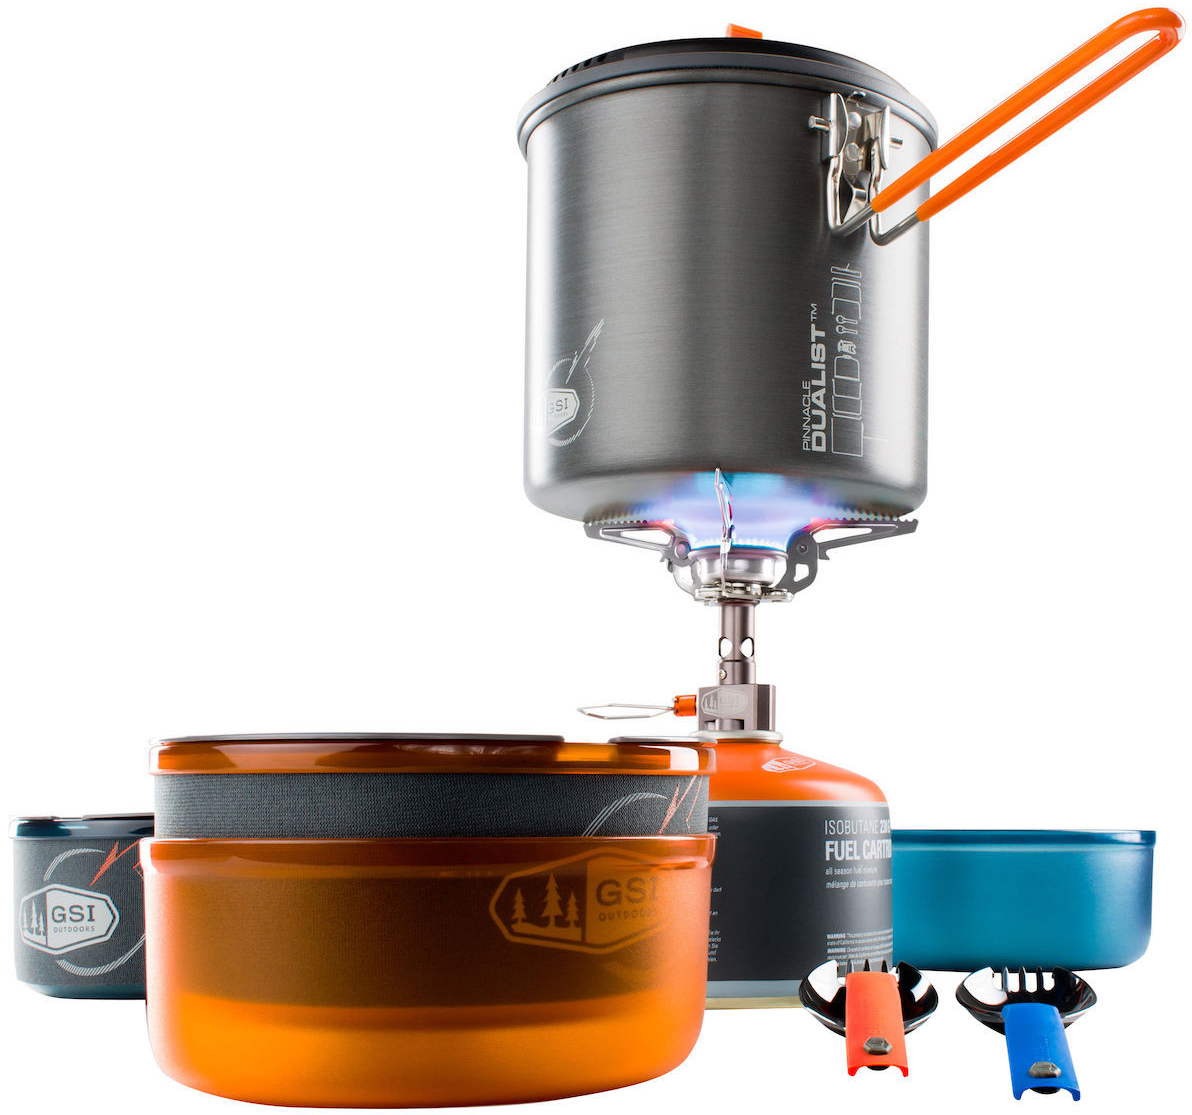 Gsi pinnacle dualist complete cookset for camping